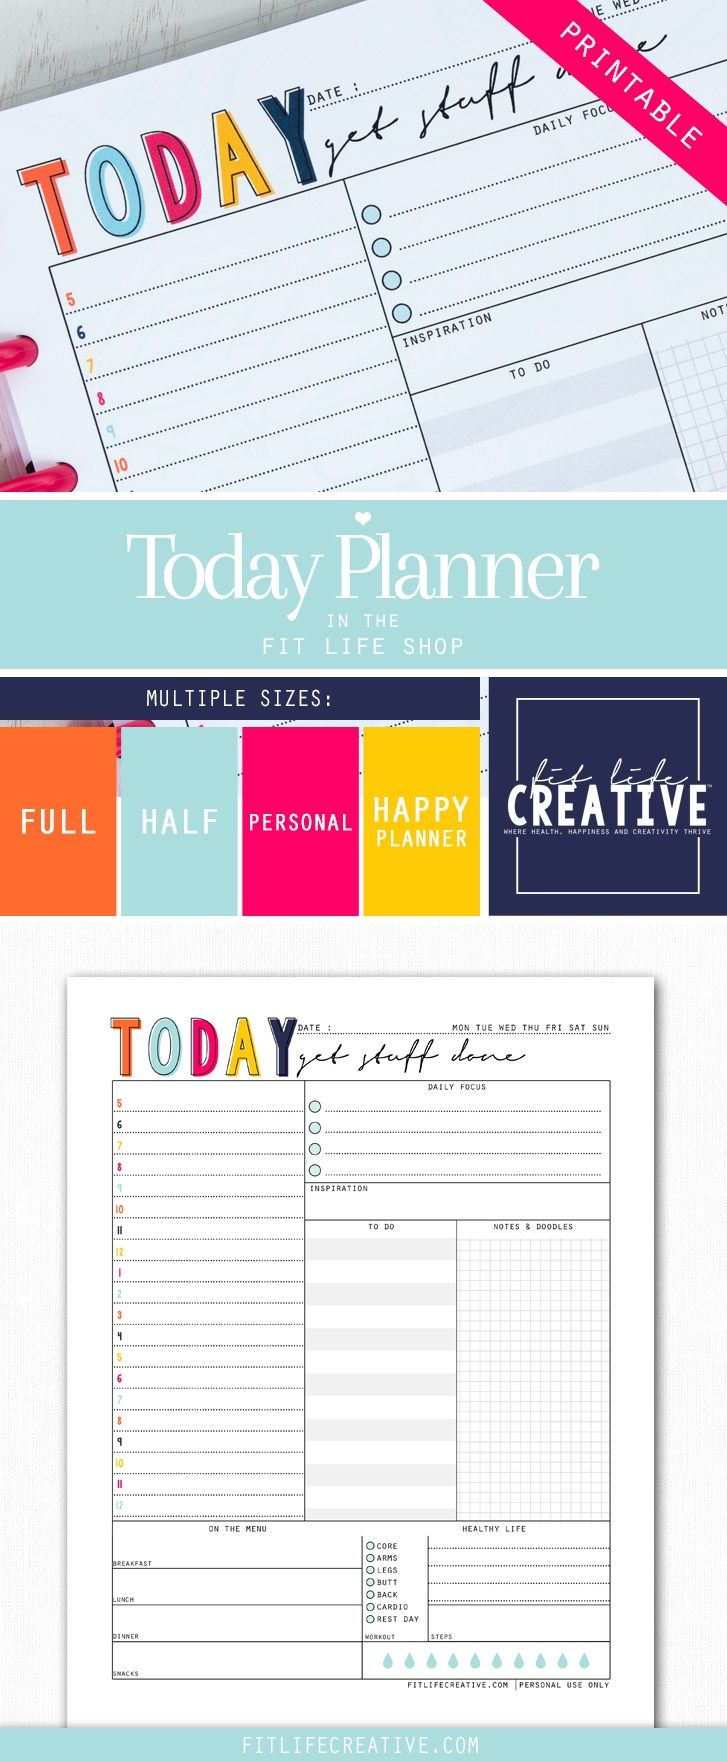 Printable Daily Planner.  Map out your entire day from task to fitness with the Today Planner printable.